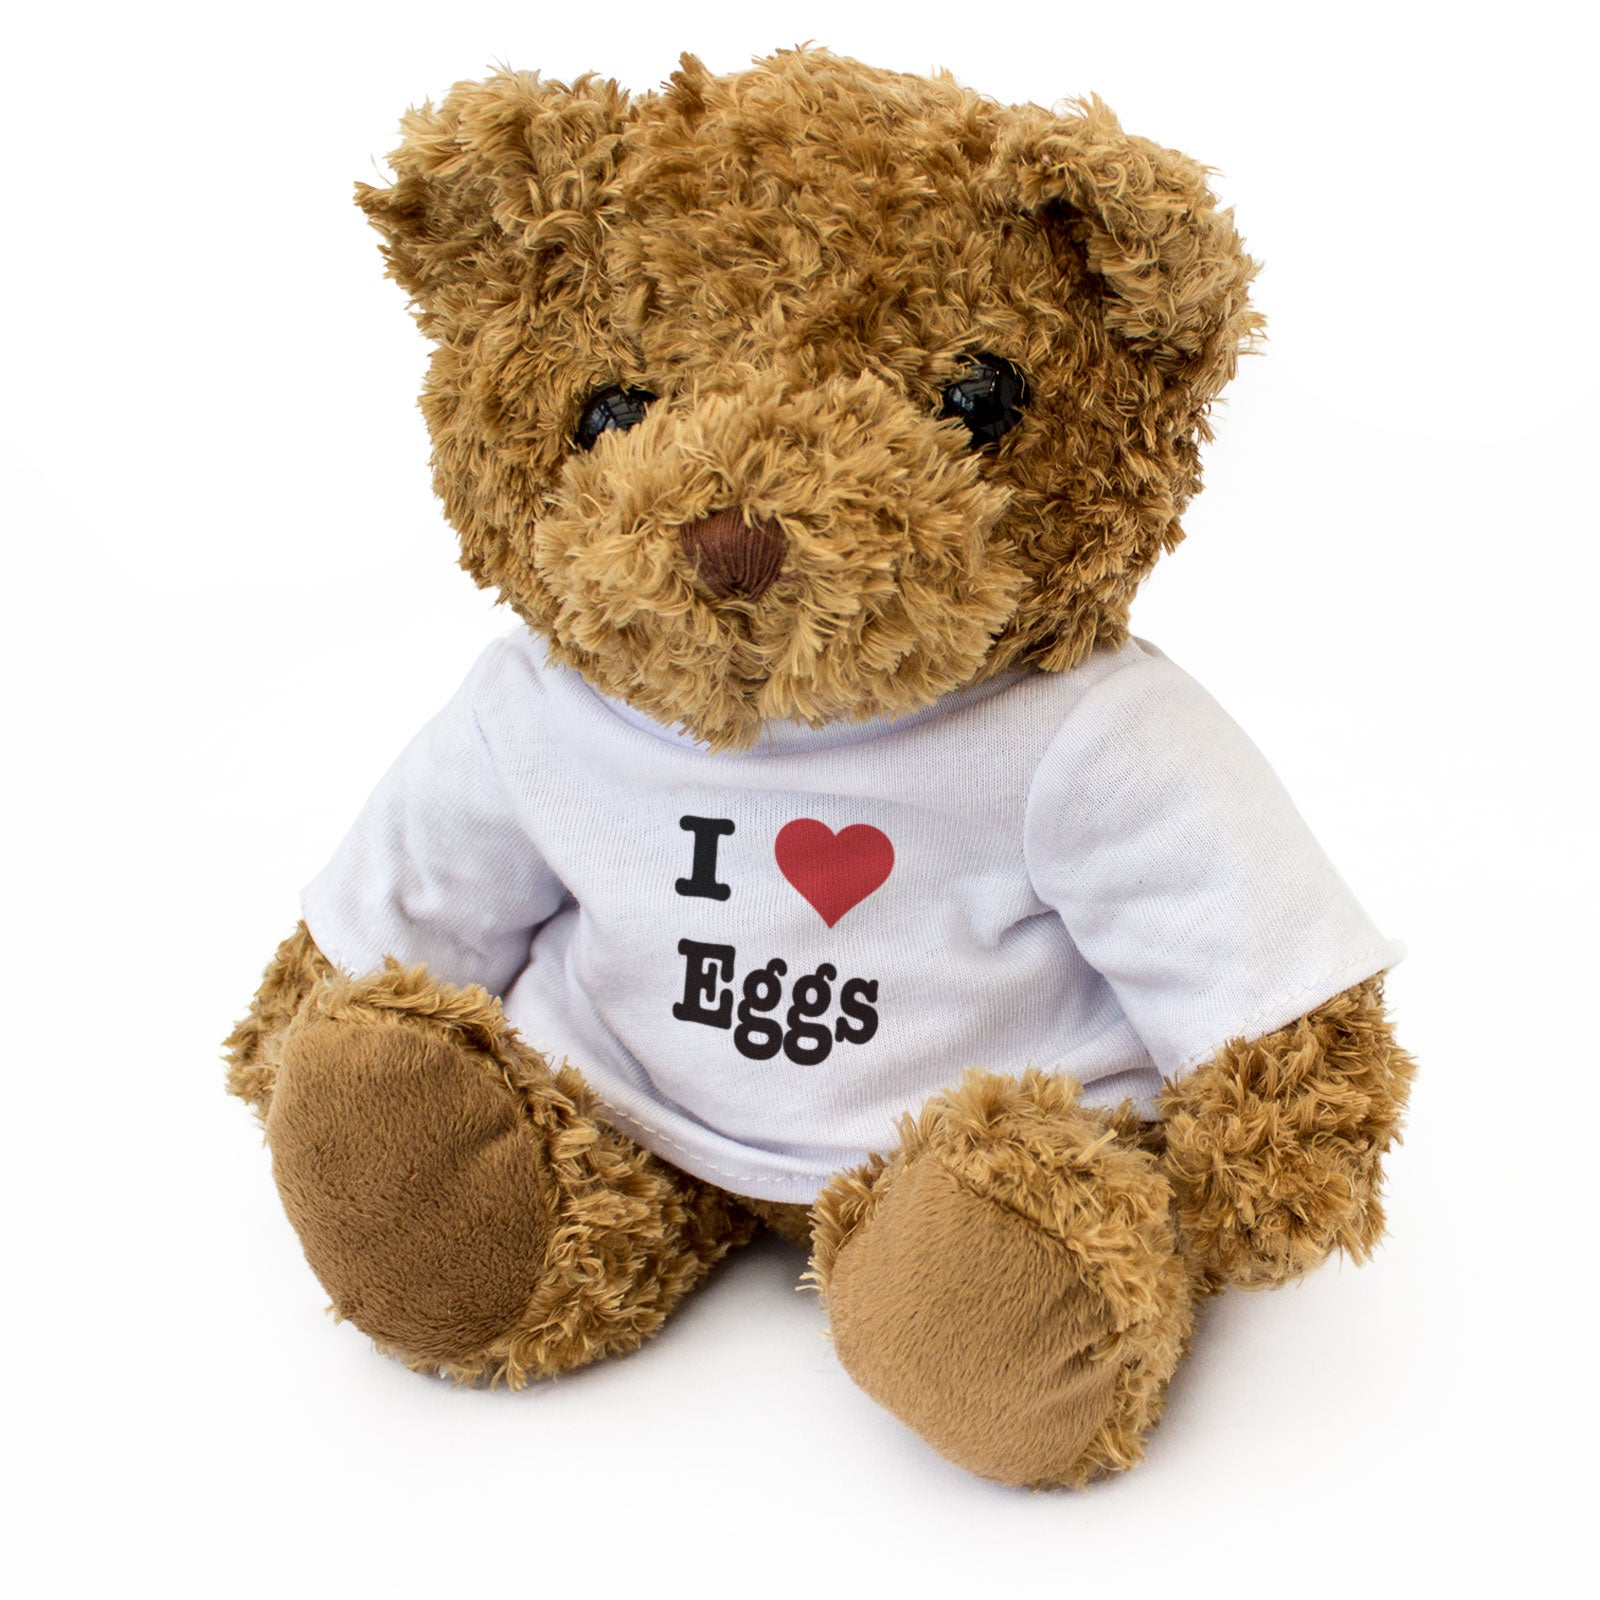 I Love Eggs - Teddy Bear